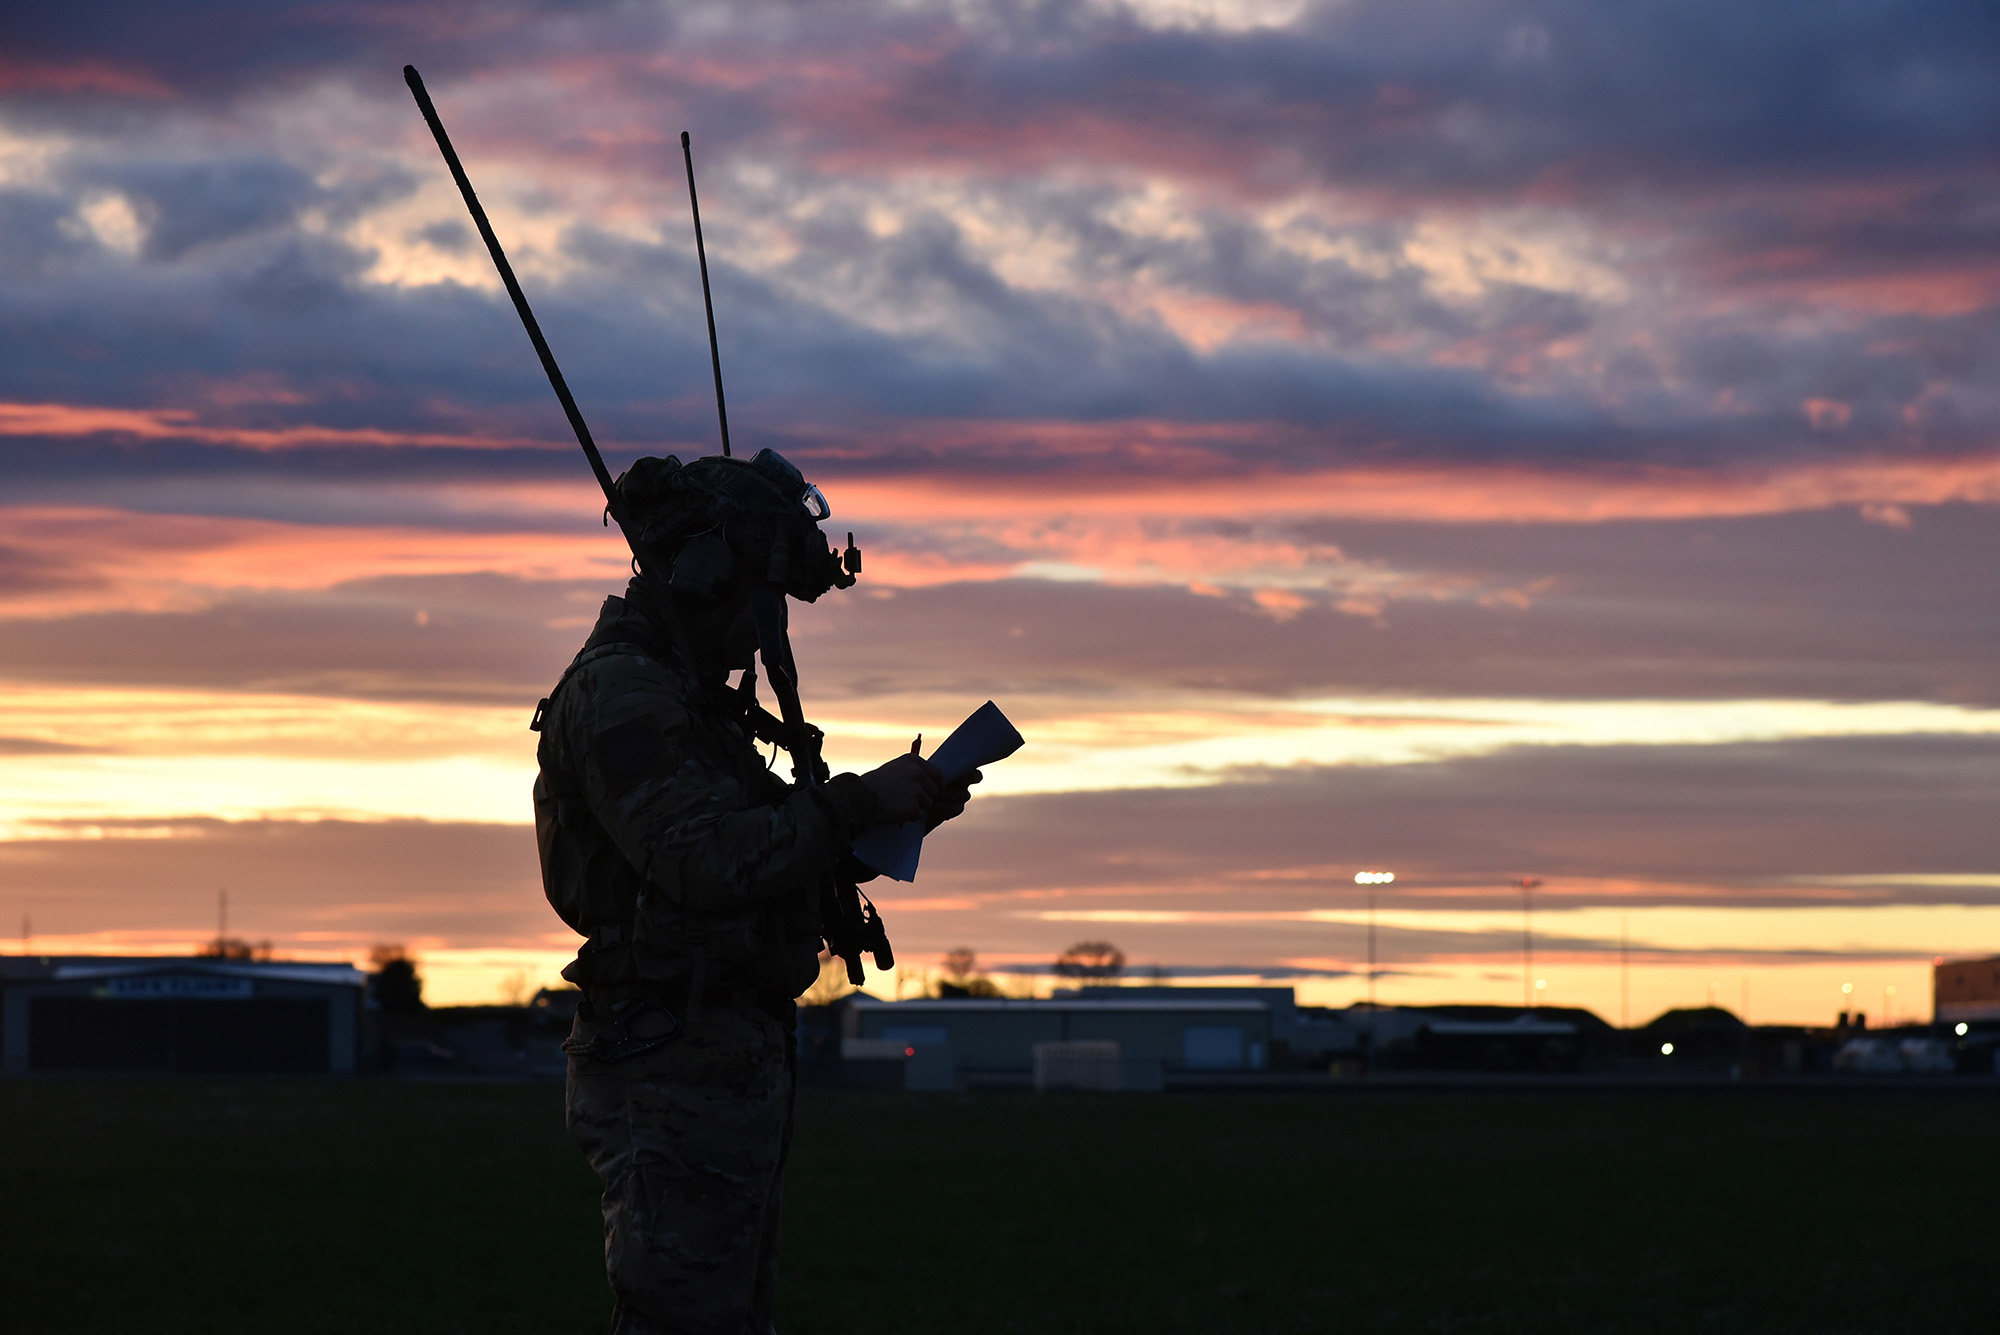 A 125th Special Tactics Squadron operator works on a new form of communication during a full mission profile in Pendleton, Ore., Feb. 4, 2021. (Tech. Sgt. Emily Moon/Air Force)